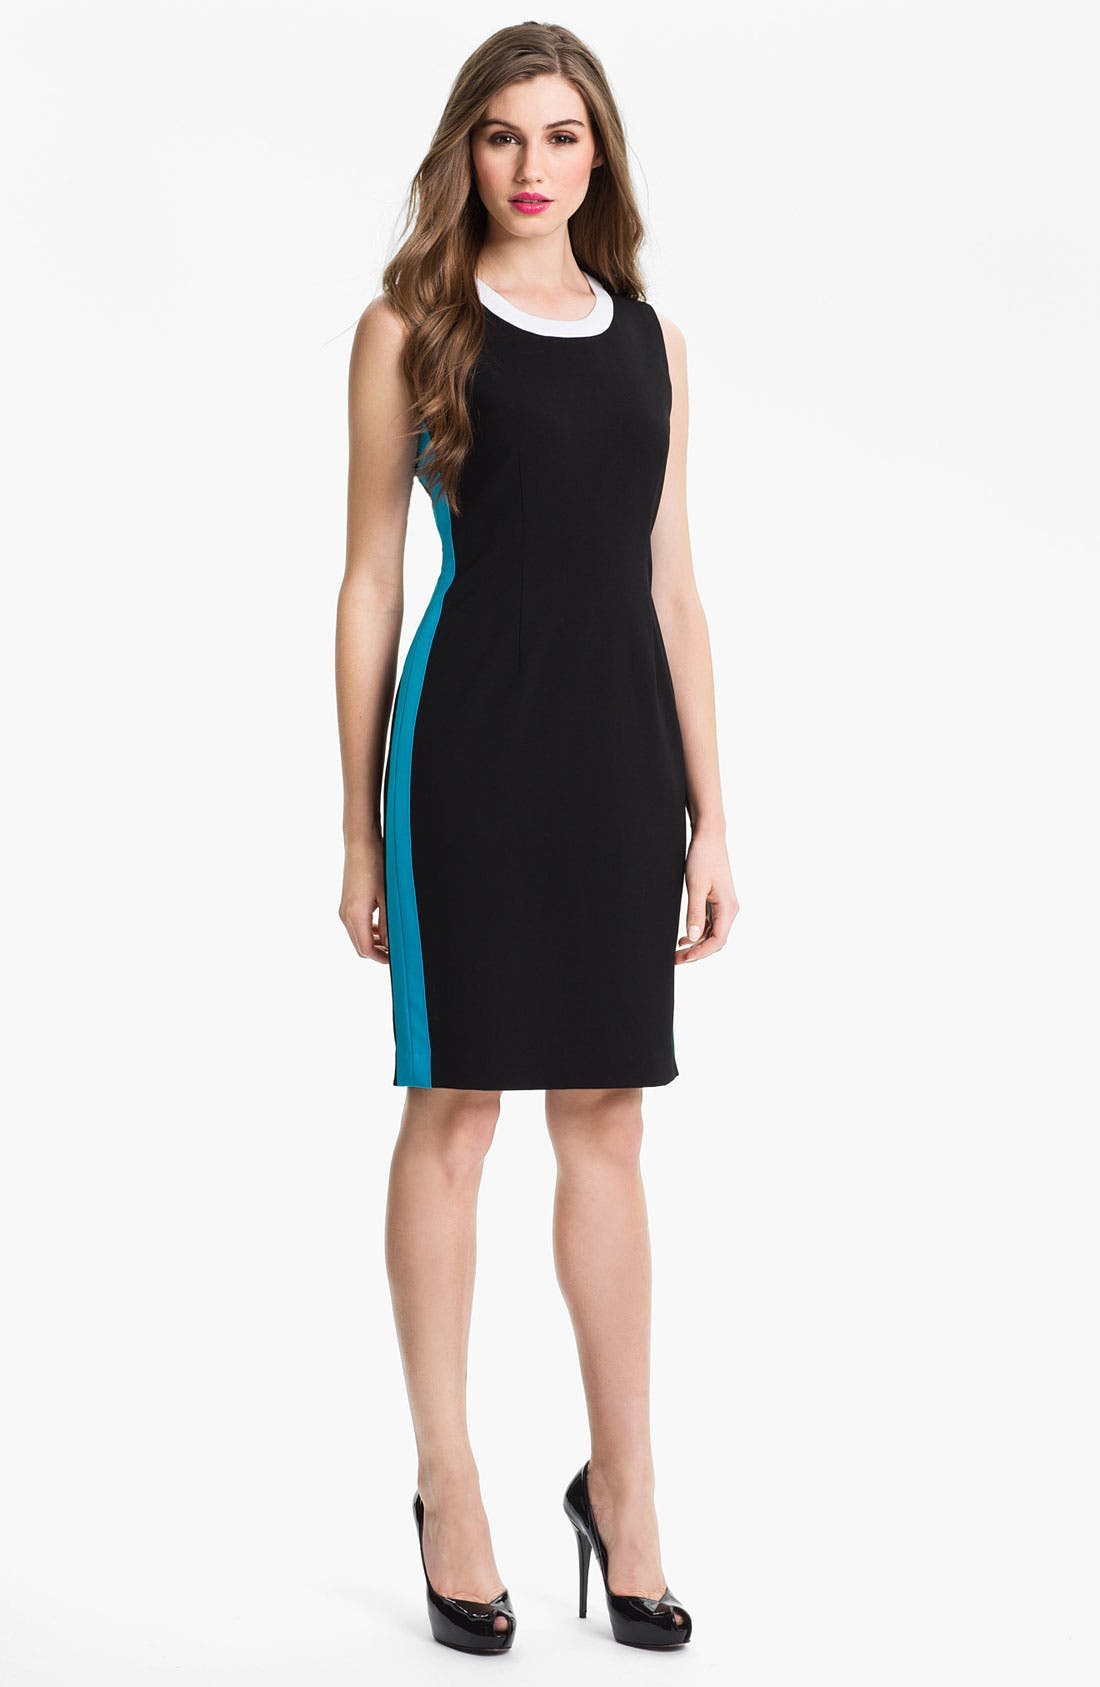 Alternate Image 1 Selected - Calvin Klein Contrast Trim Sheath Dress